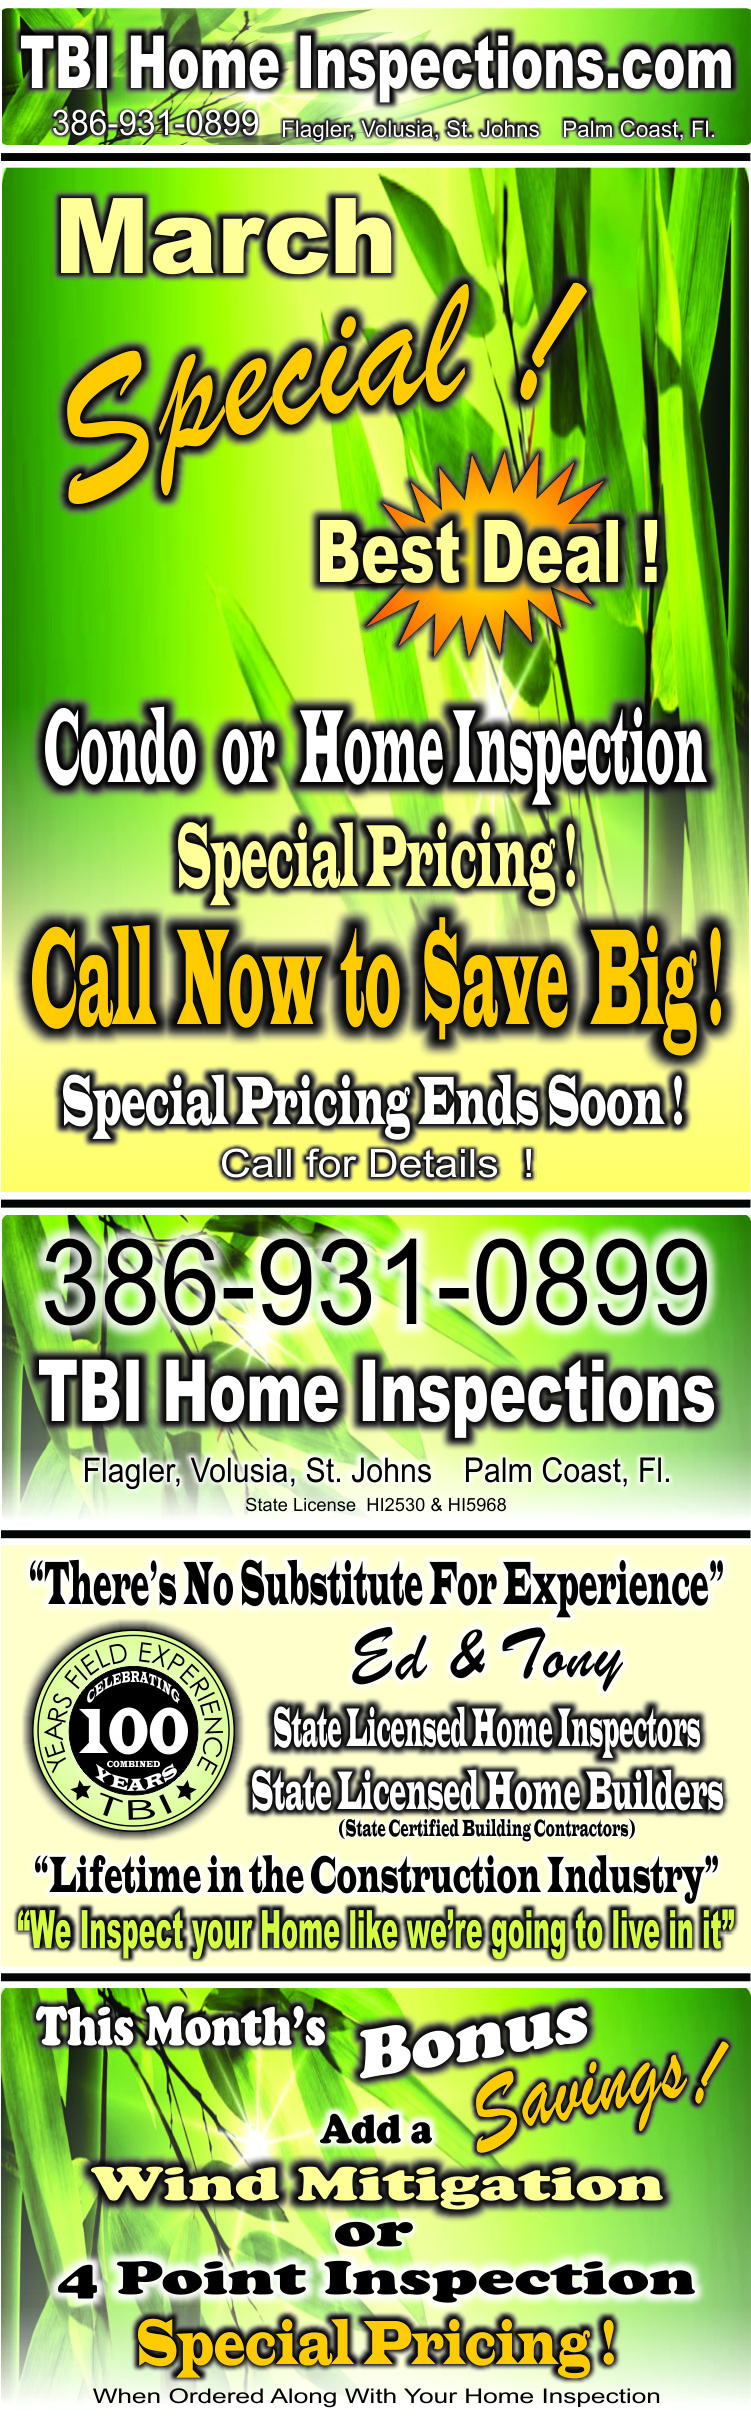 TBI Home Inspections